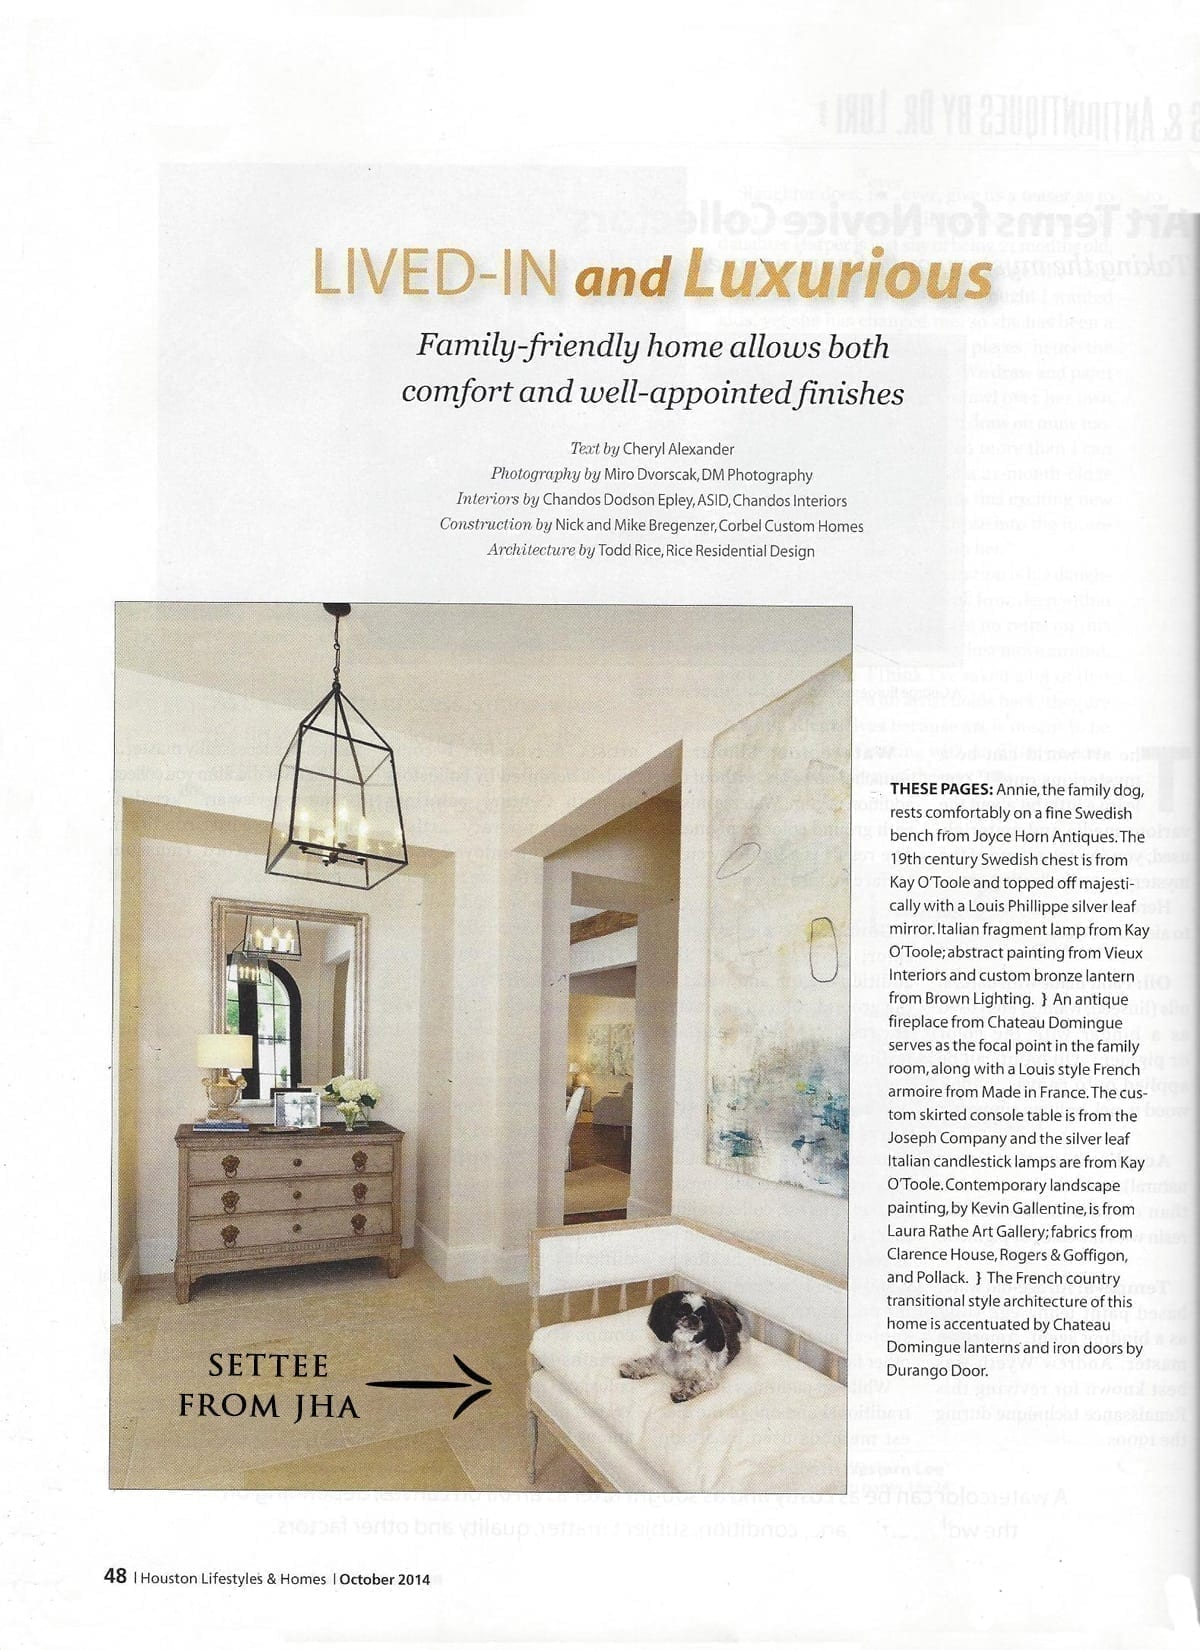 HOUSTON LIFESTYLES AND HOMES